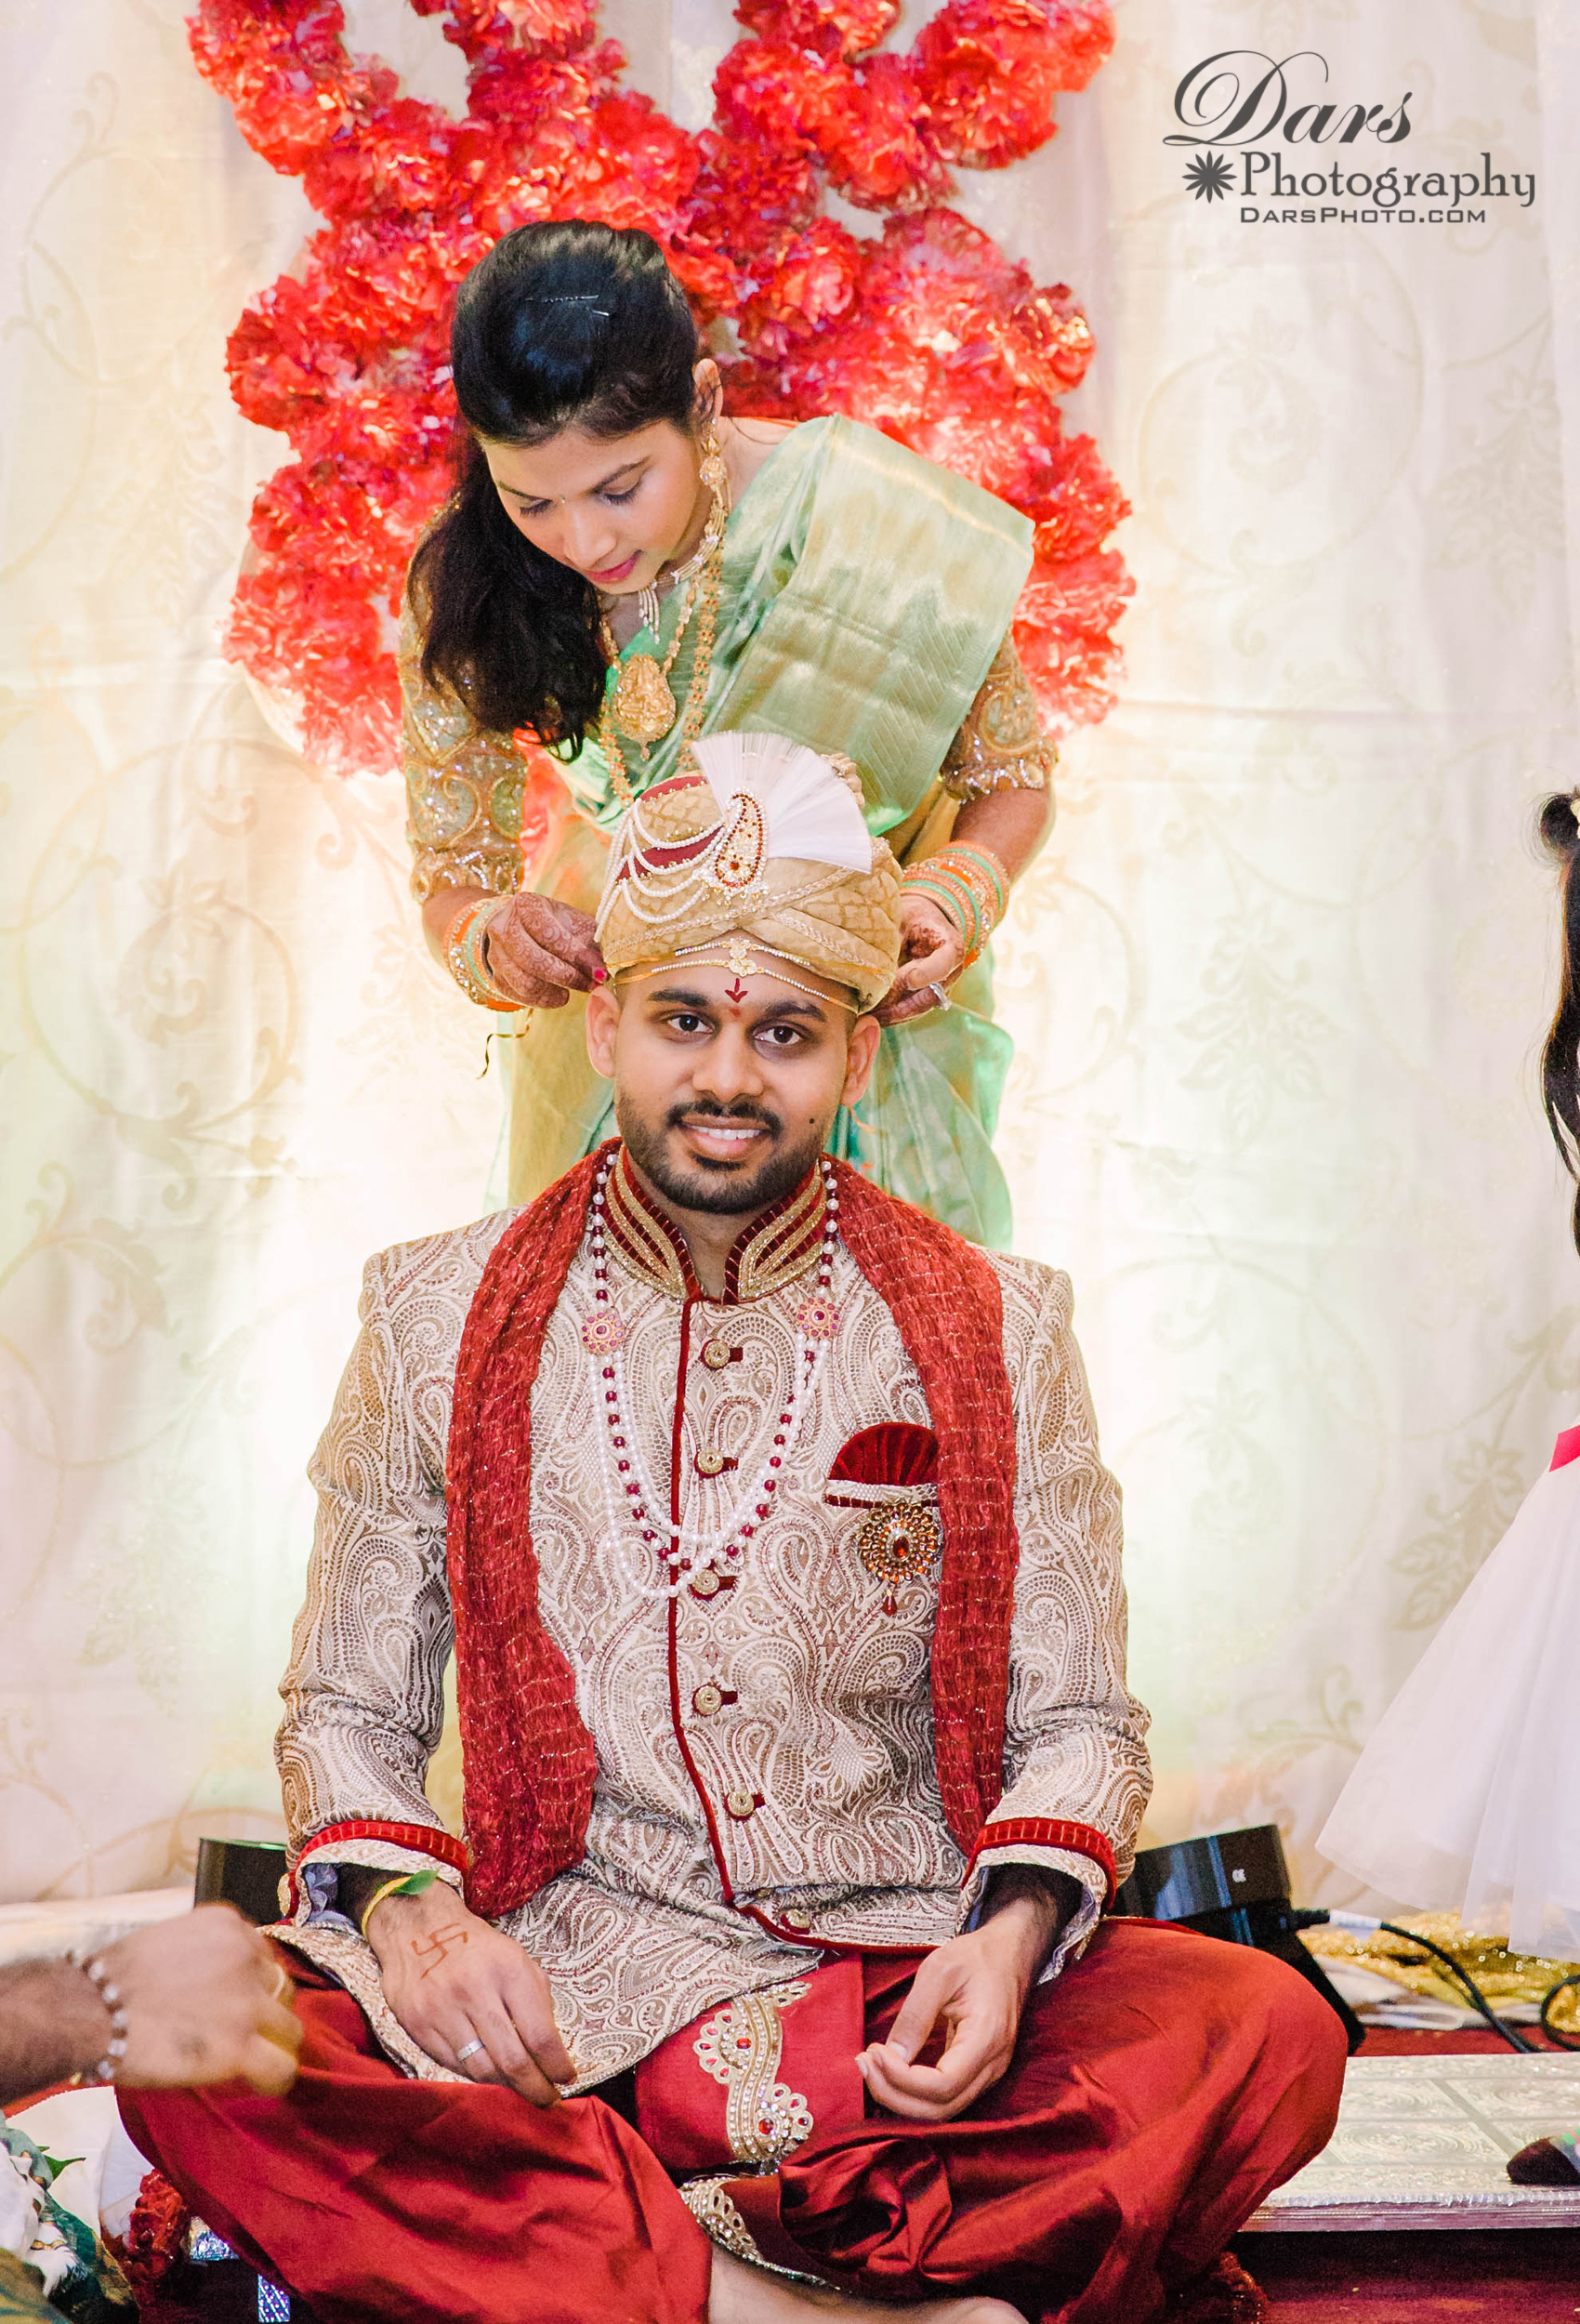 Chicago American And Indian Wedding Photographer DARS Photography 31